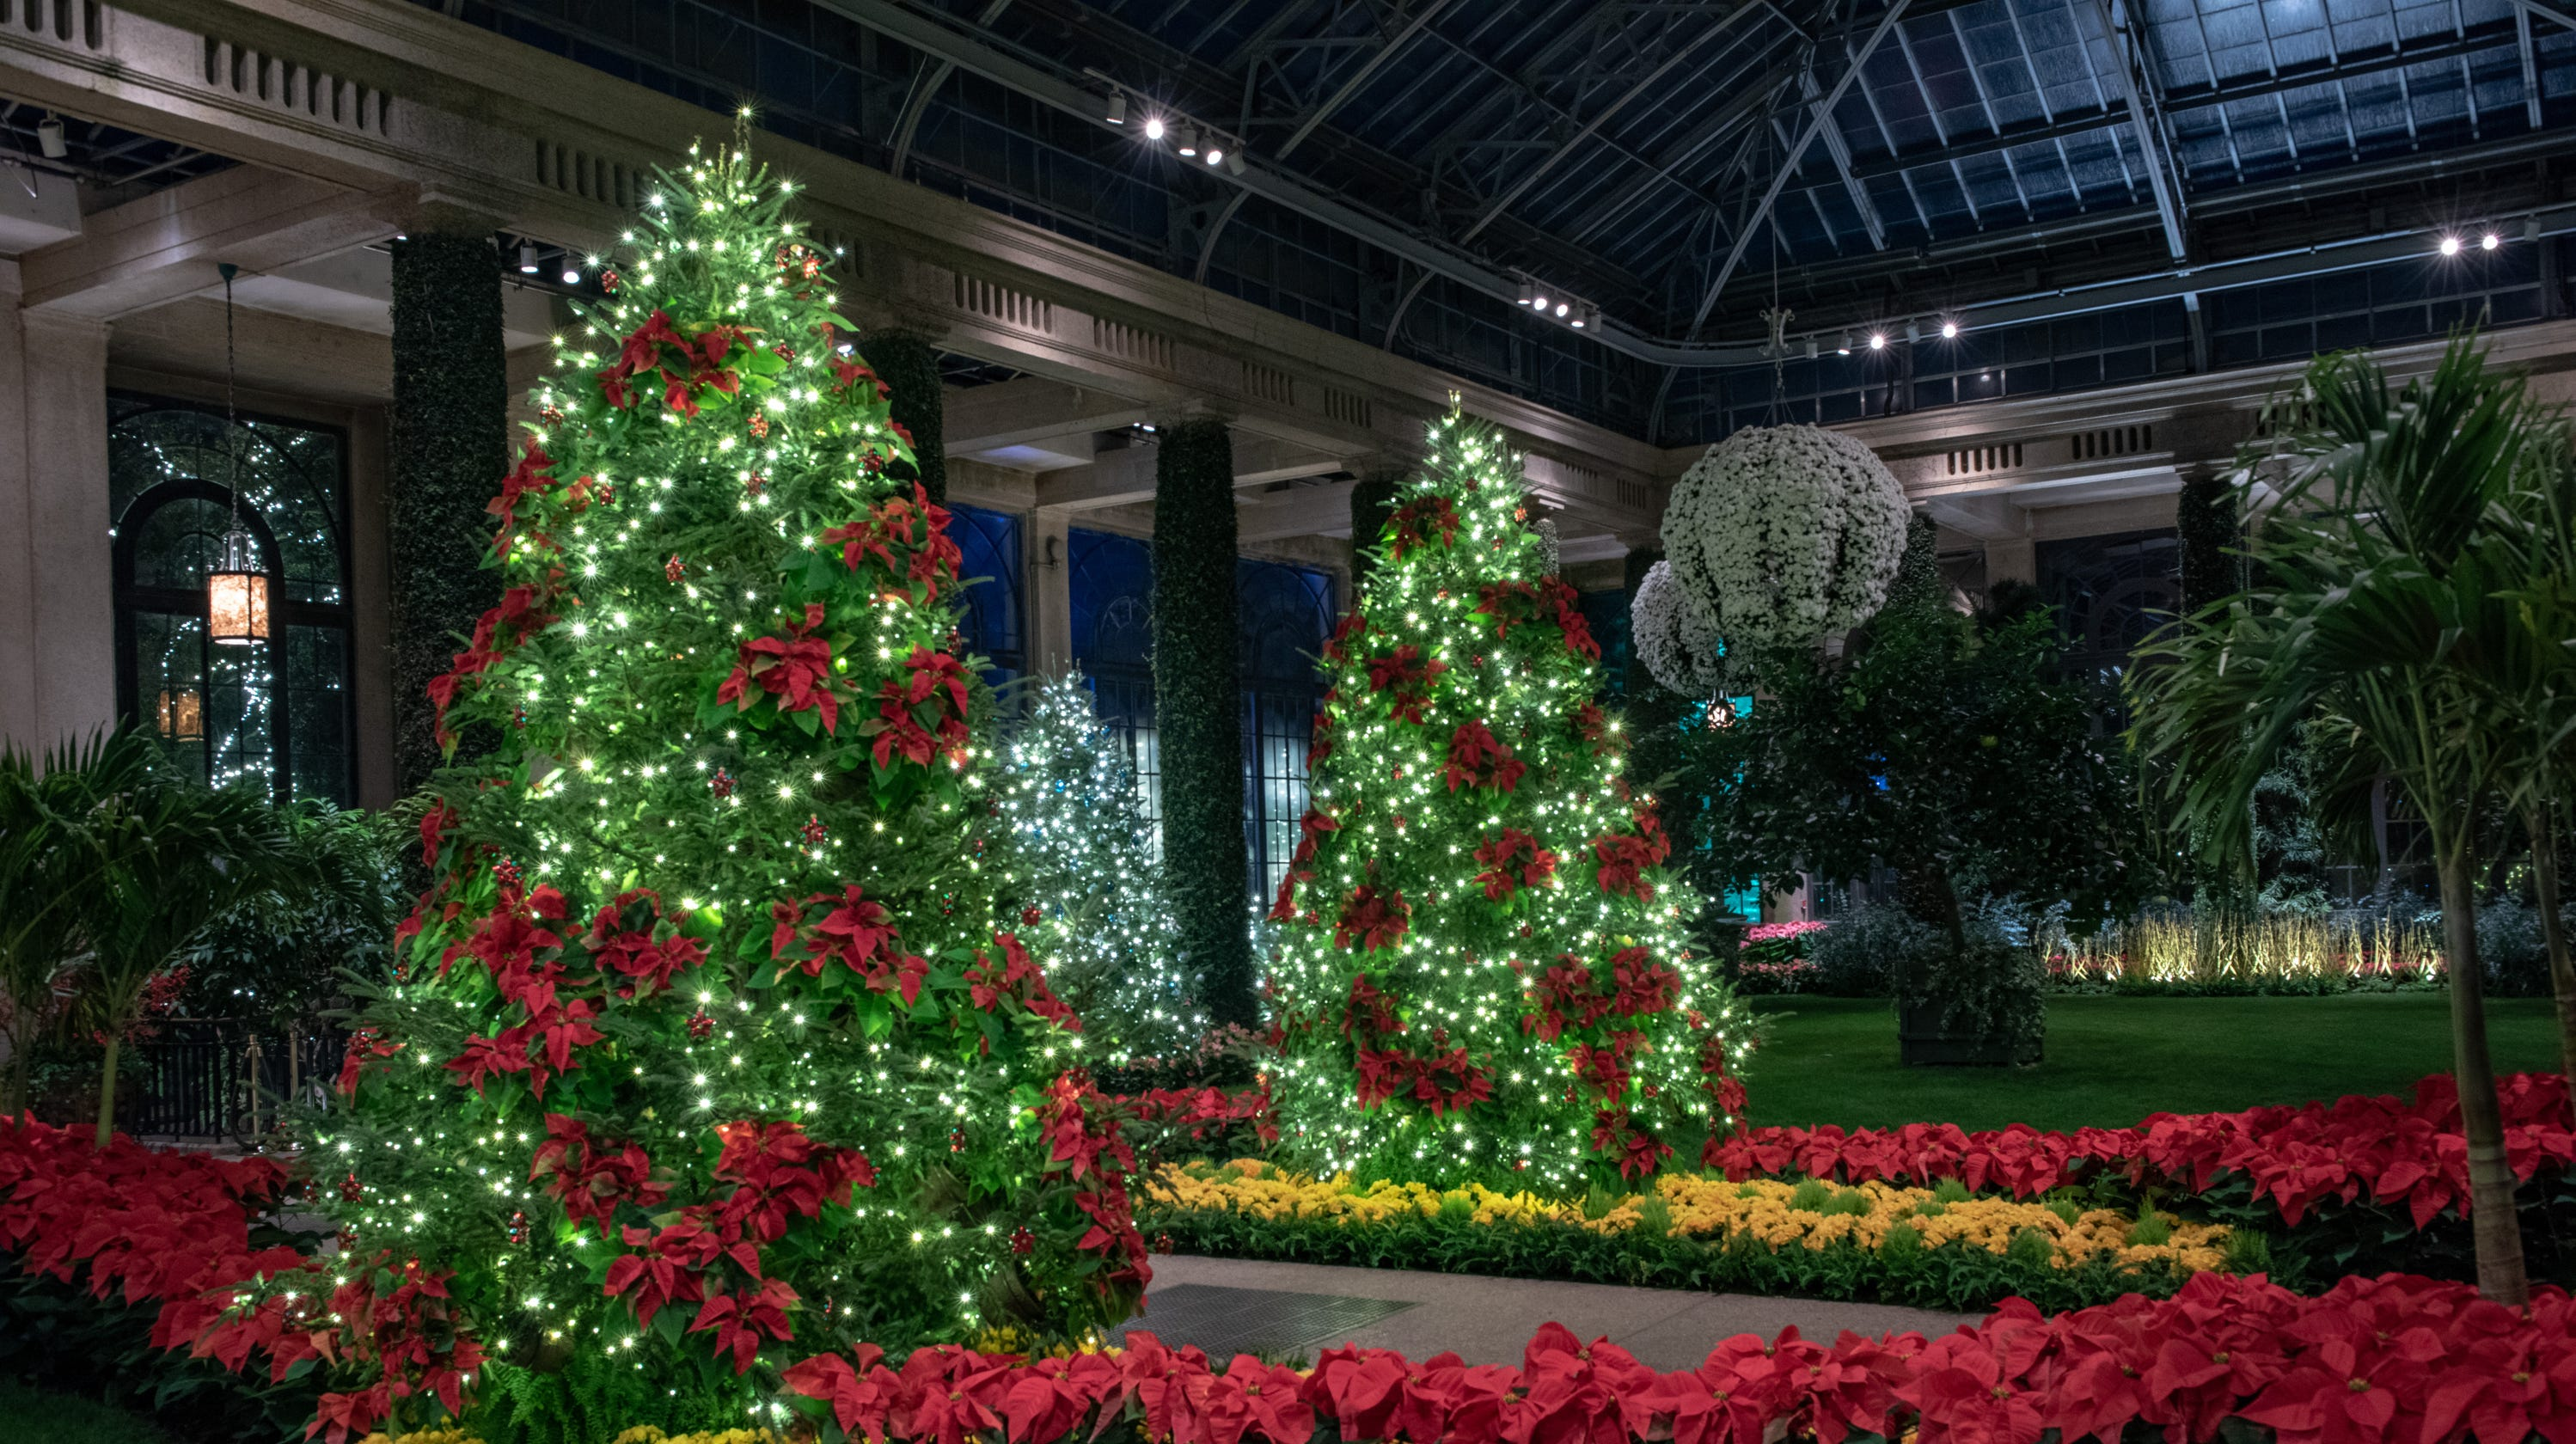 9 Things Not To Miss At Longwood Gardens 2018 Christmas Display